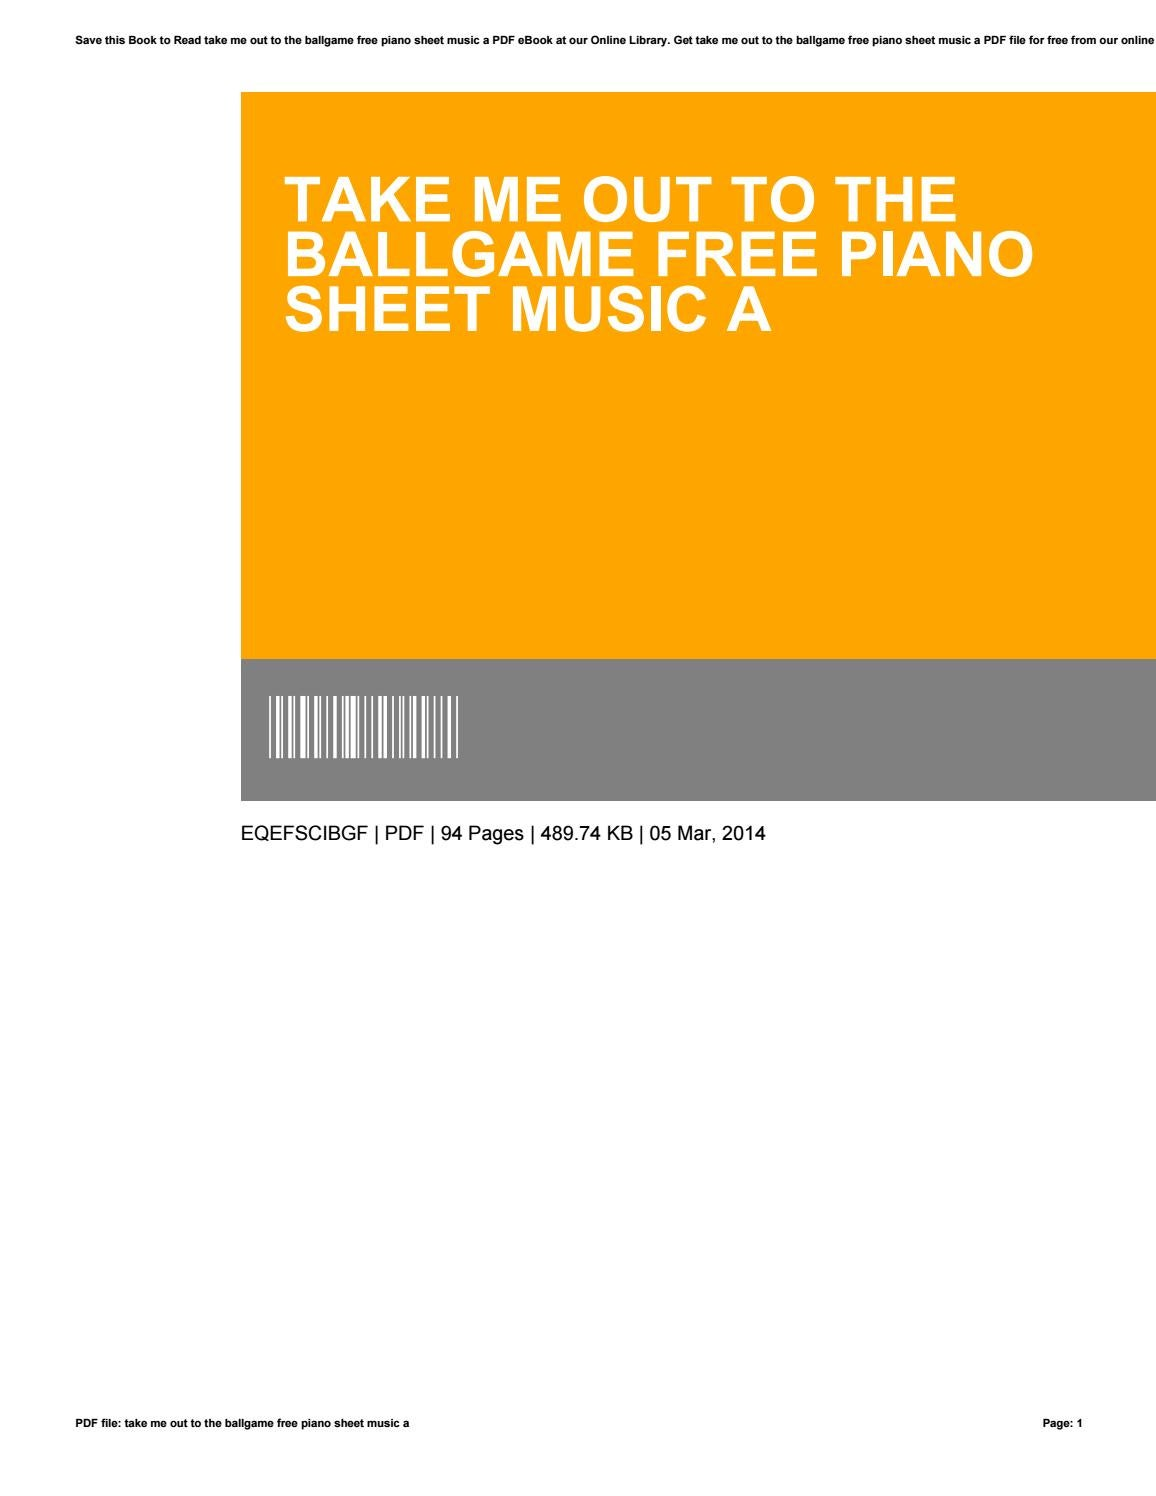 Take Me Out To The Ballgame Free Piano Sheet Music A By Ribut63hsimi Issuu